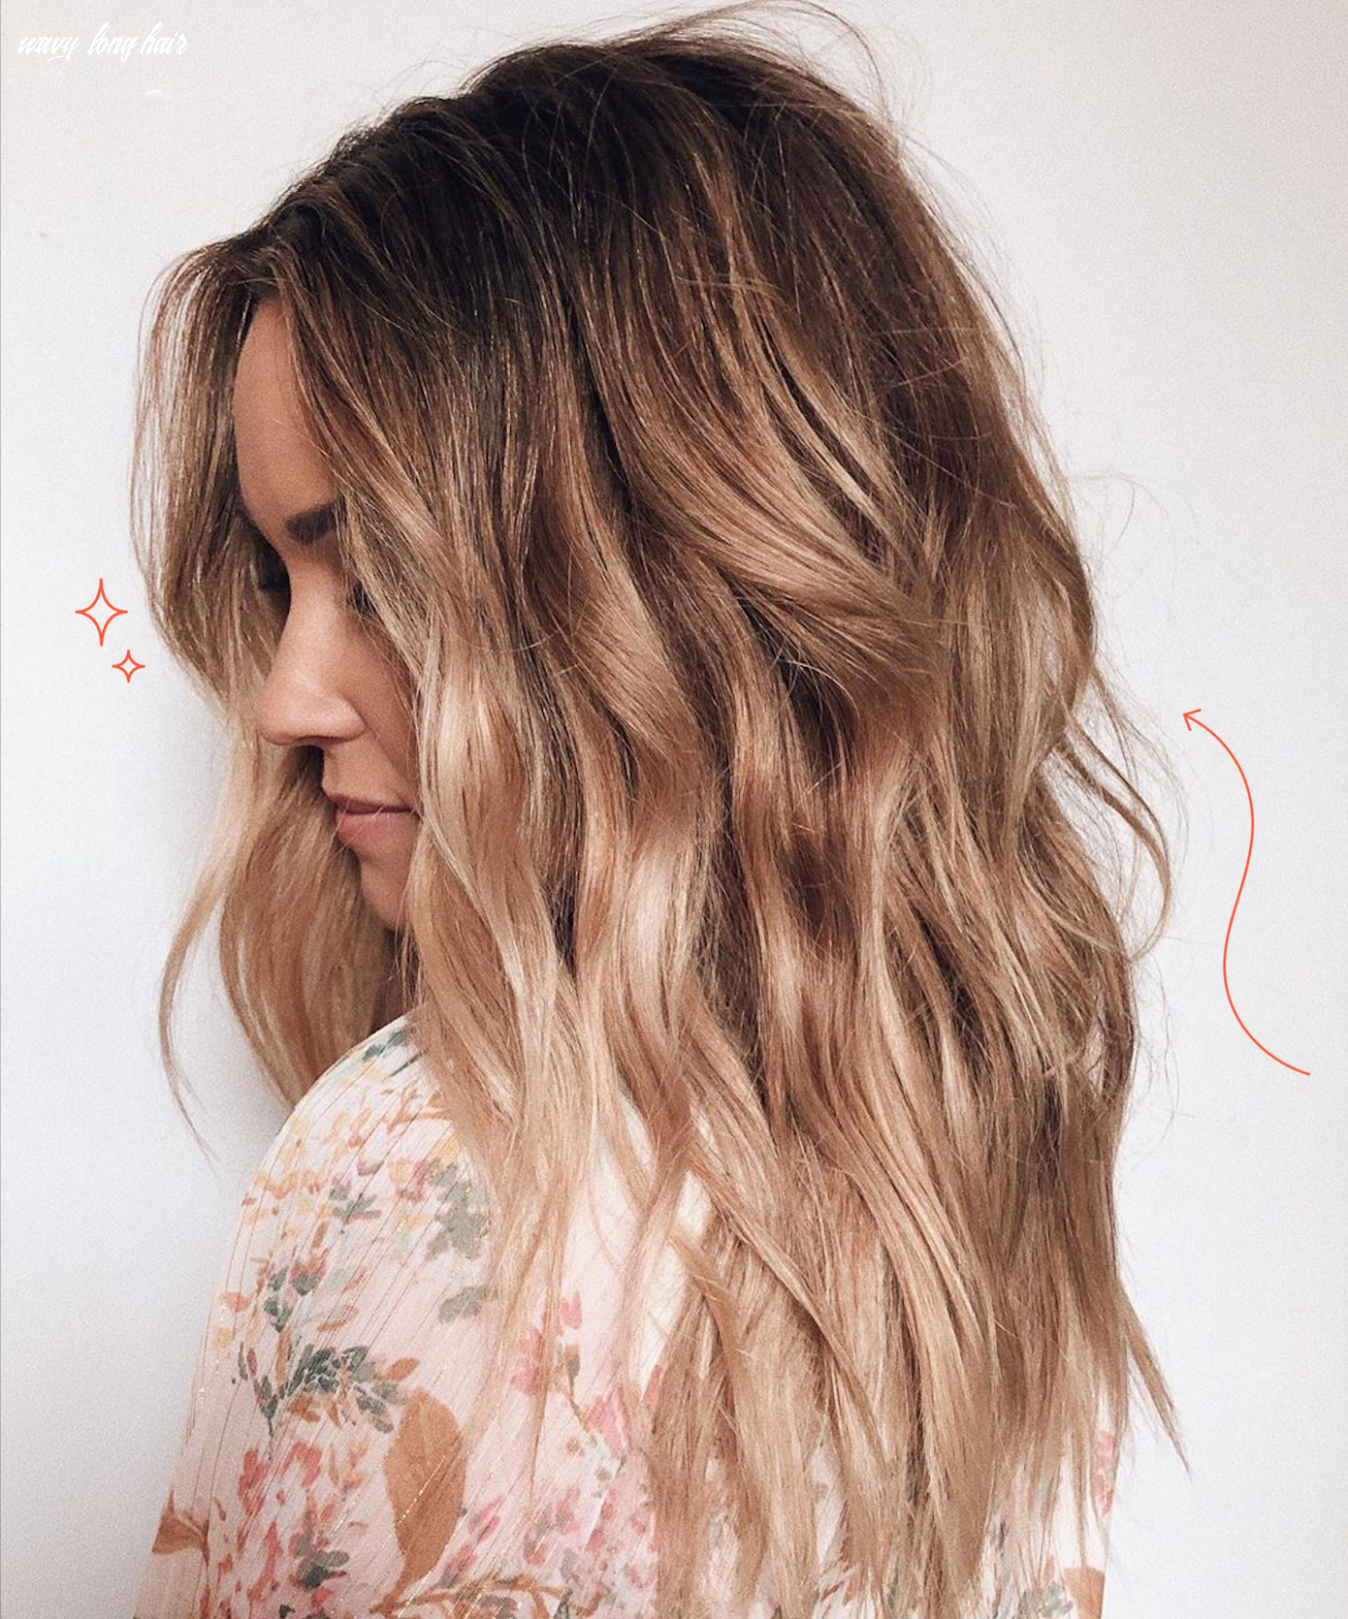 12 Beach Waves Tutorials for All Hair Textures - How to Get Beach Waves